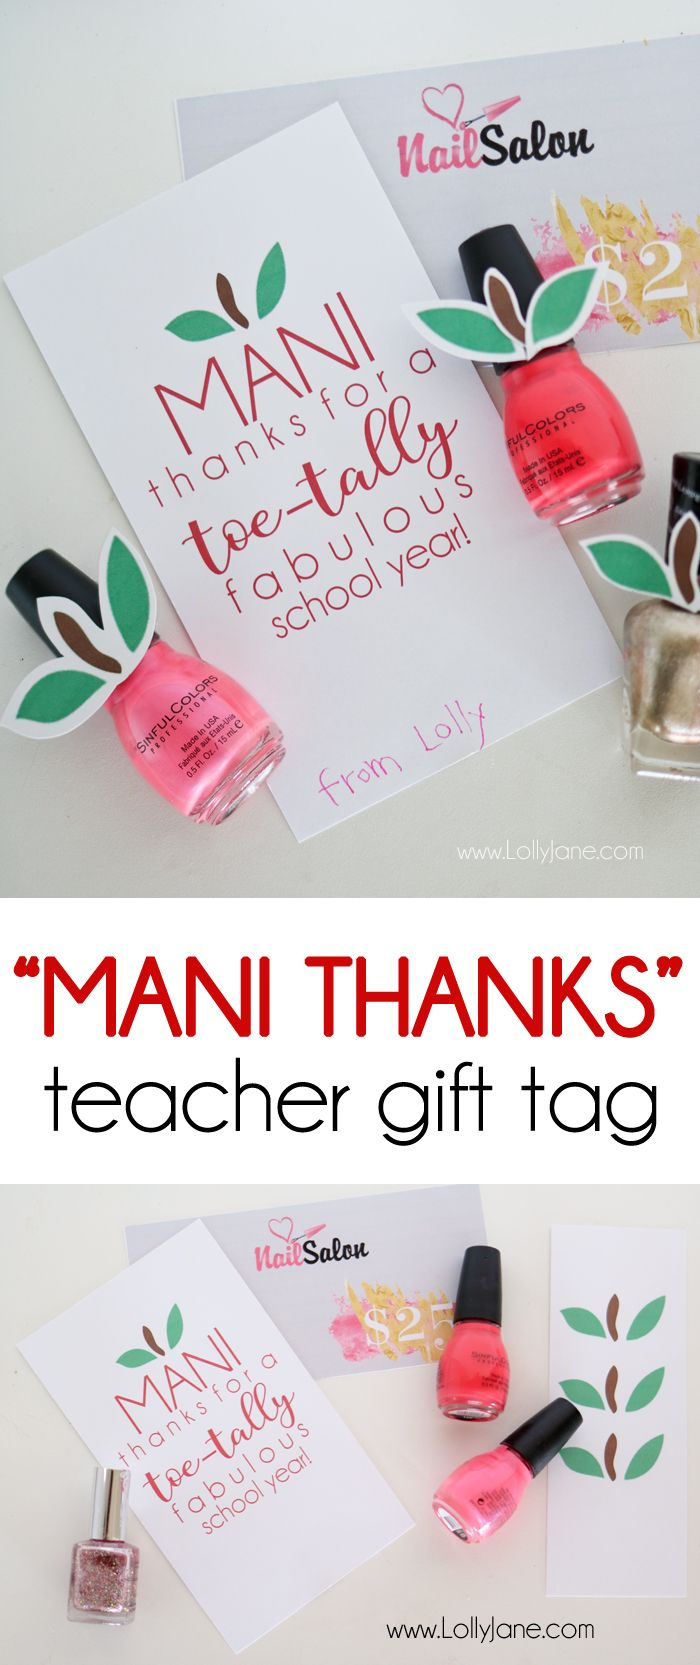 """Mani thanks"" teacher gift tag 